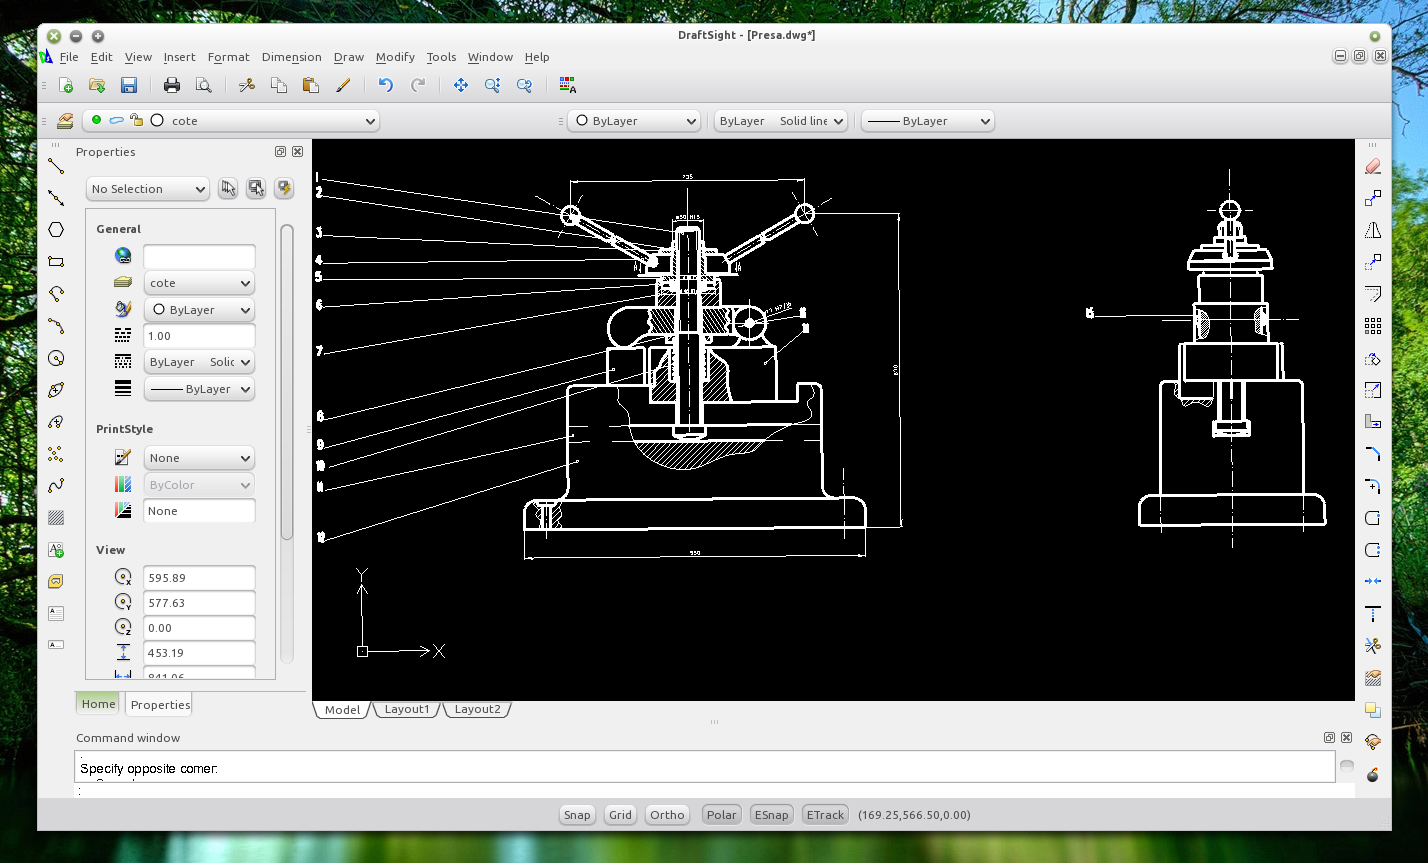 Download DraftSight - Free AutoCAD-Compatible 2D CAD Software For